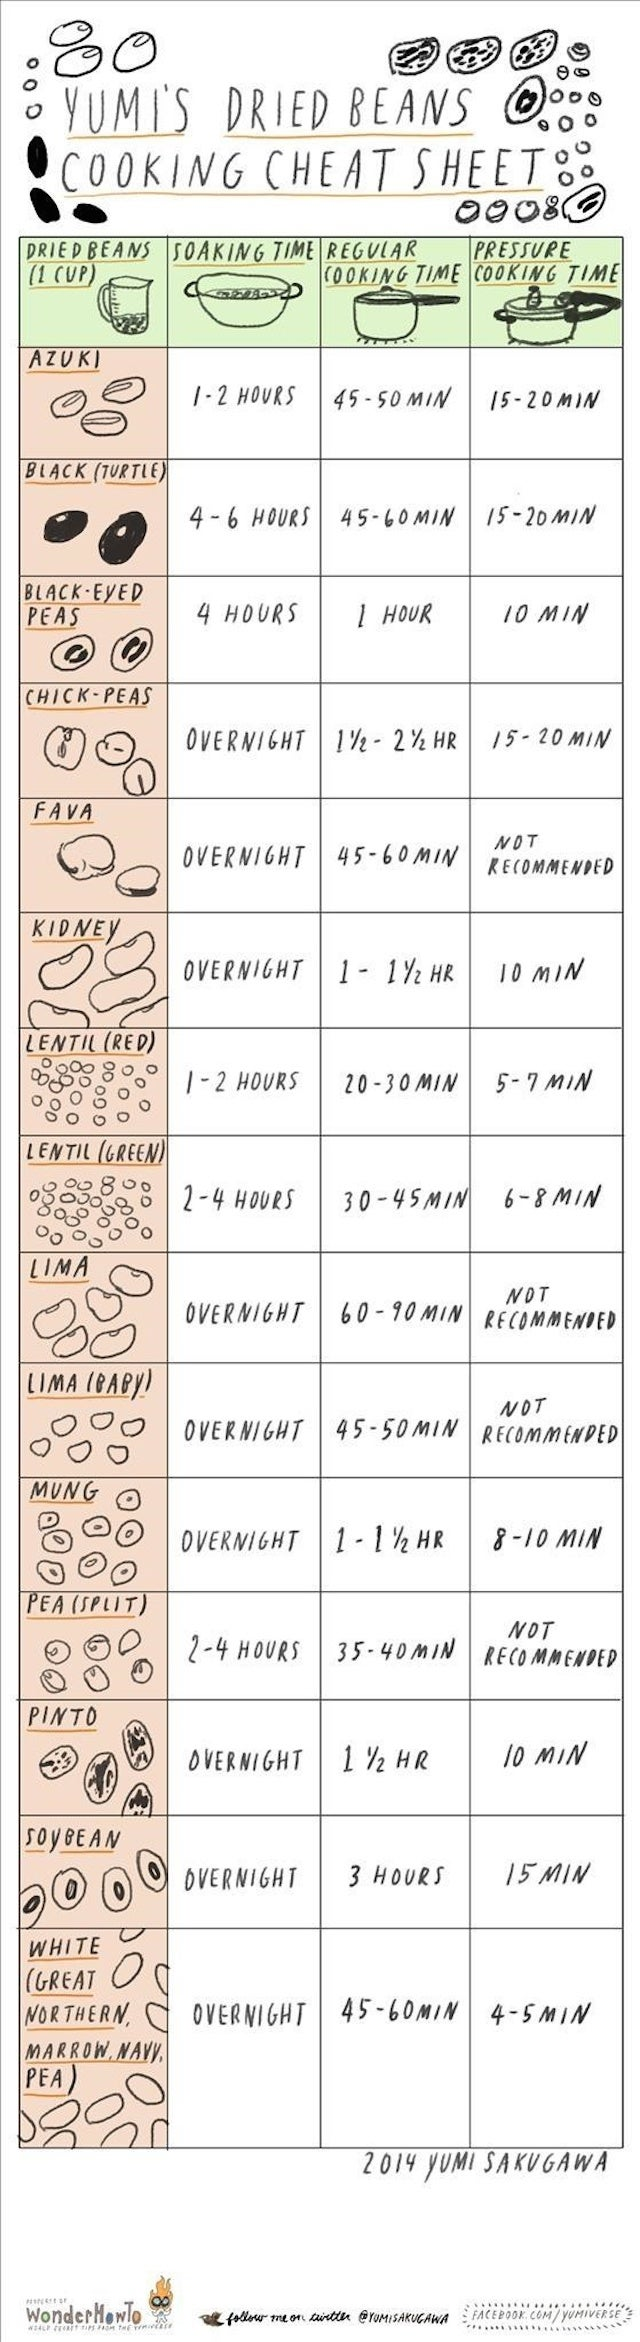 This Cheat Sheet Shows You The Right Soaking Times for Dried Beans